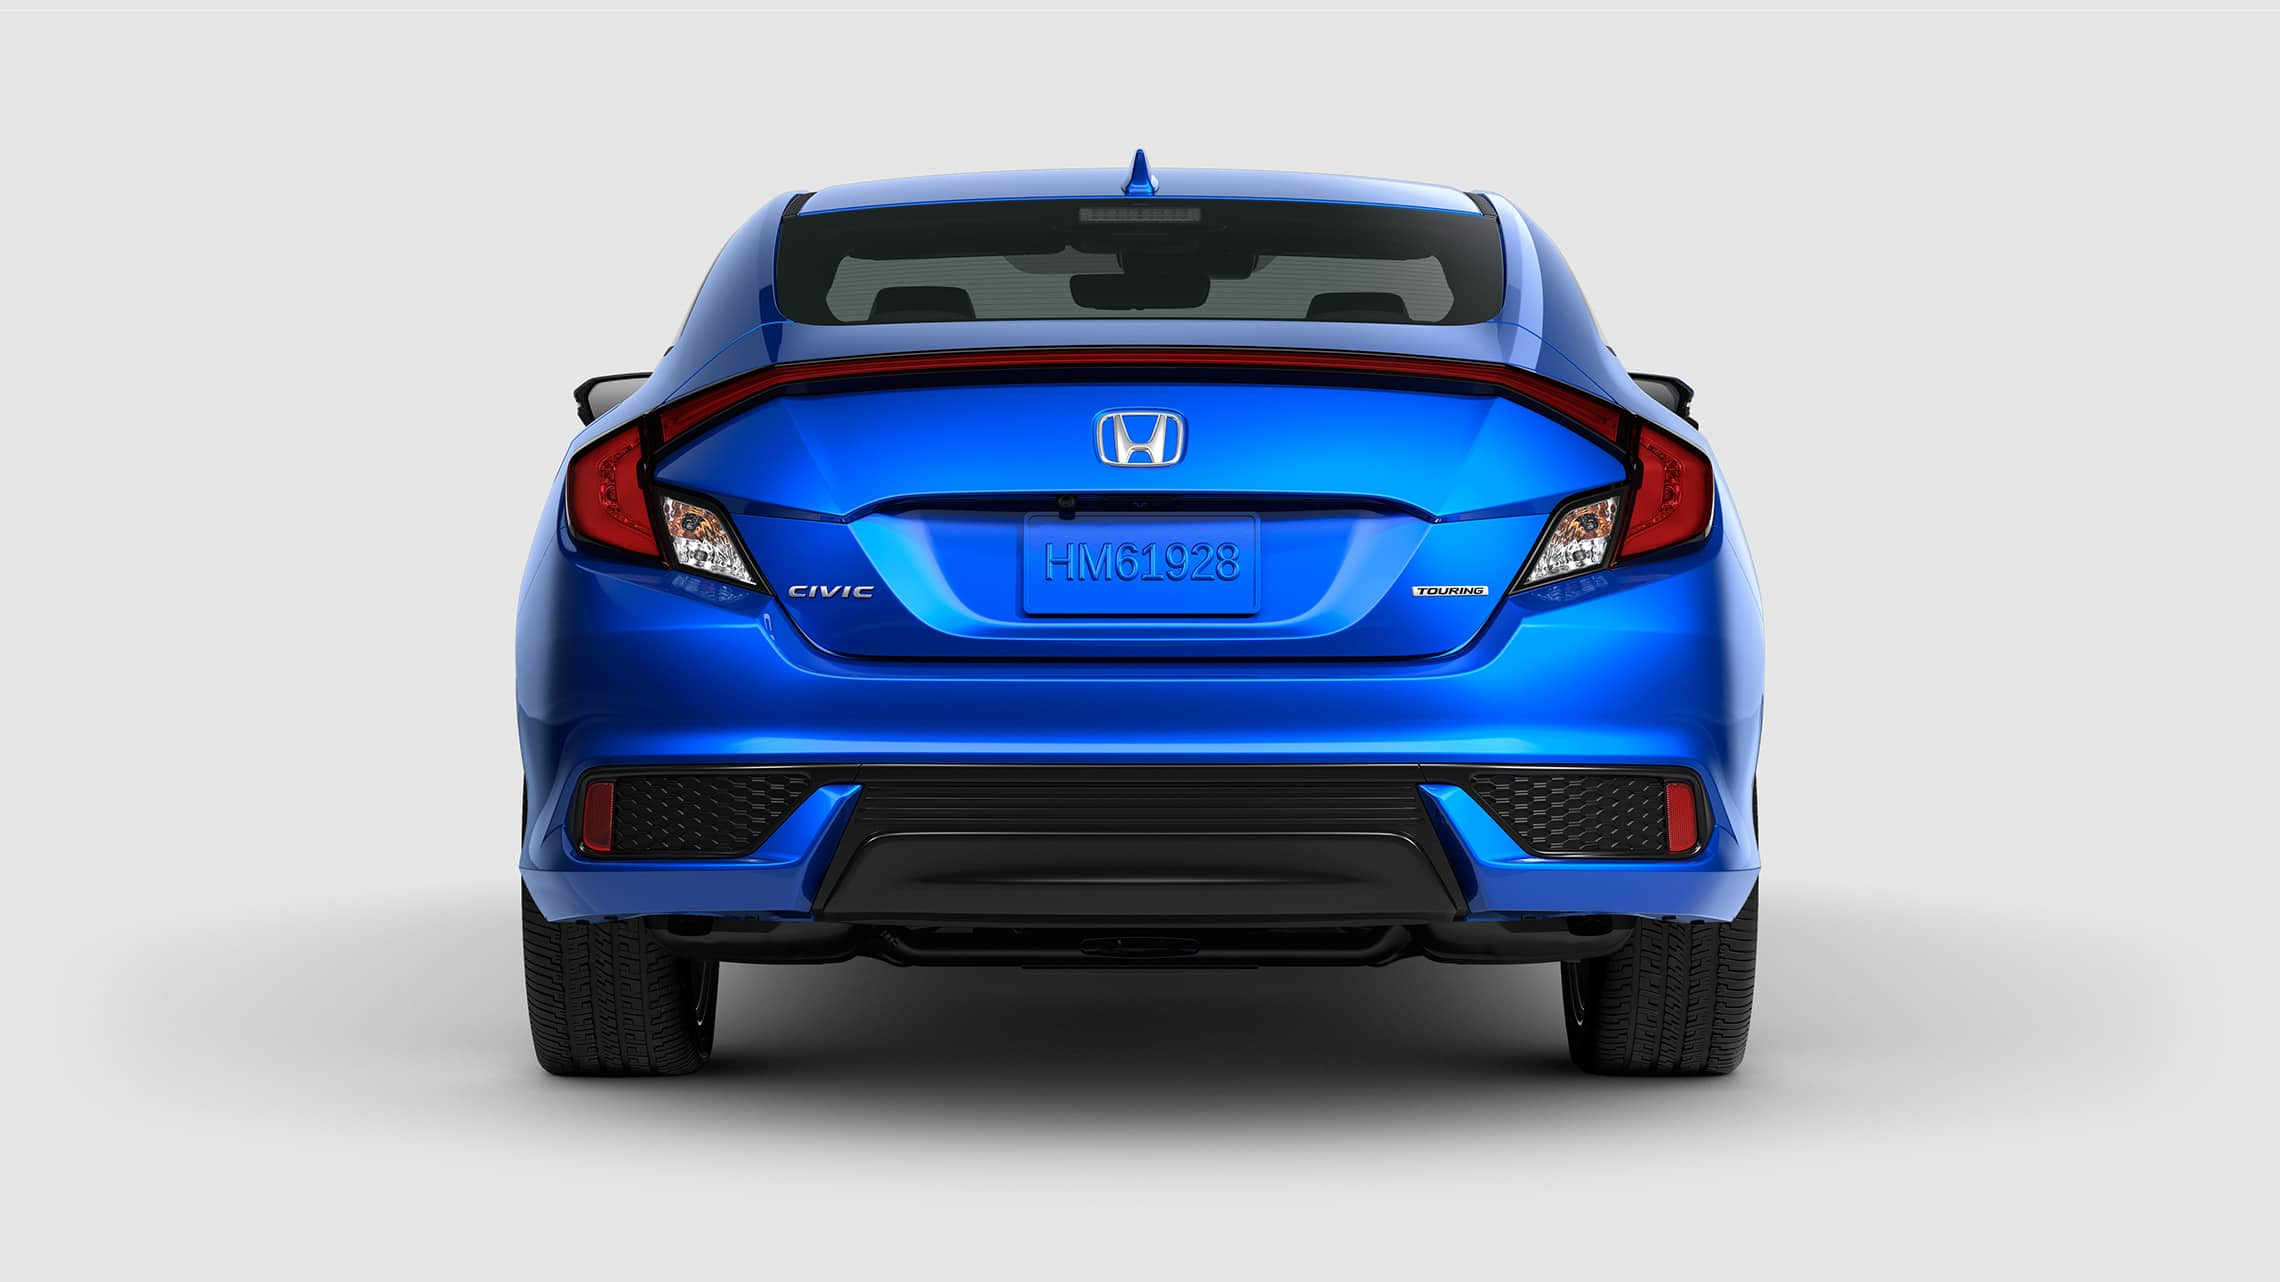 Rear view of the 2020 Honda Civic Touring Coupe in Aegean Blue Metallic.